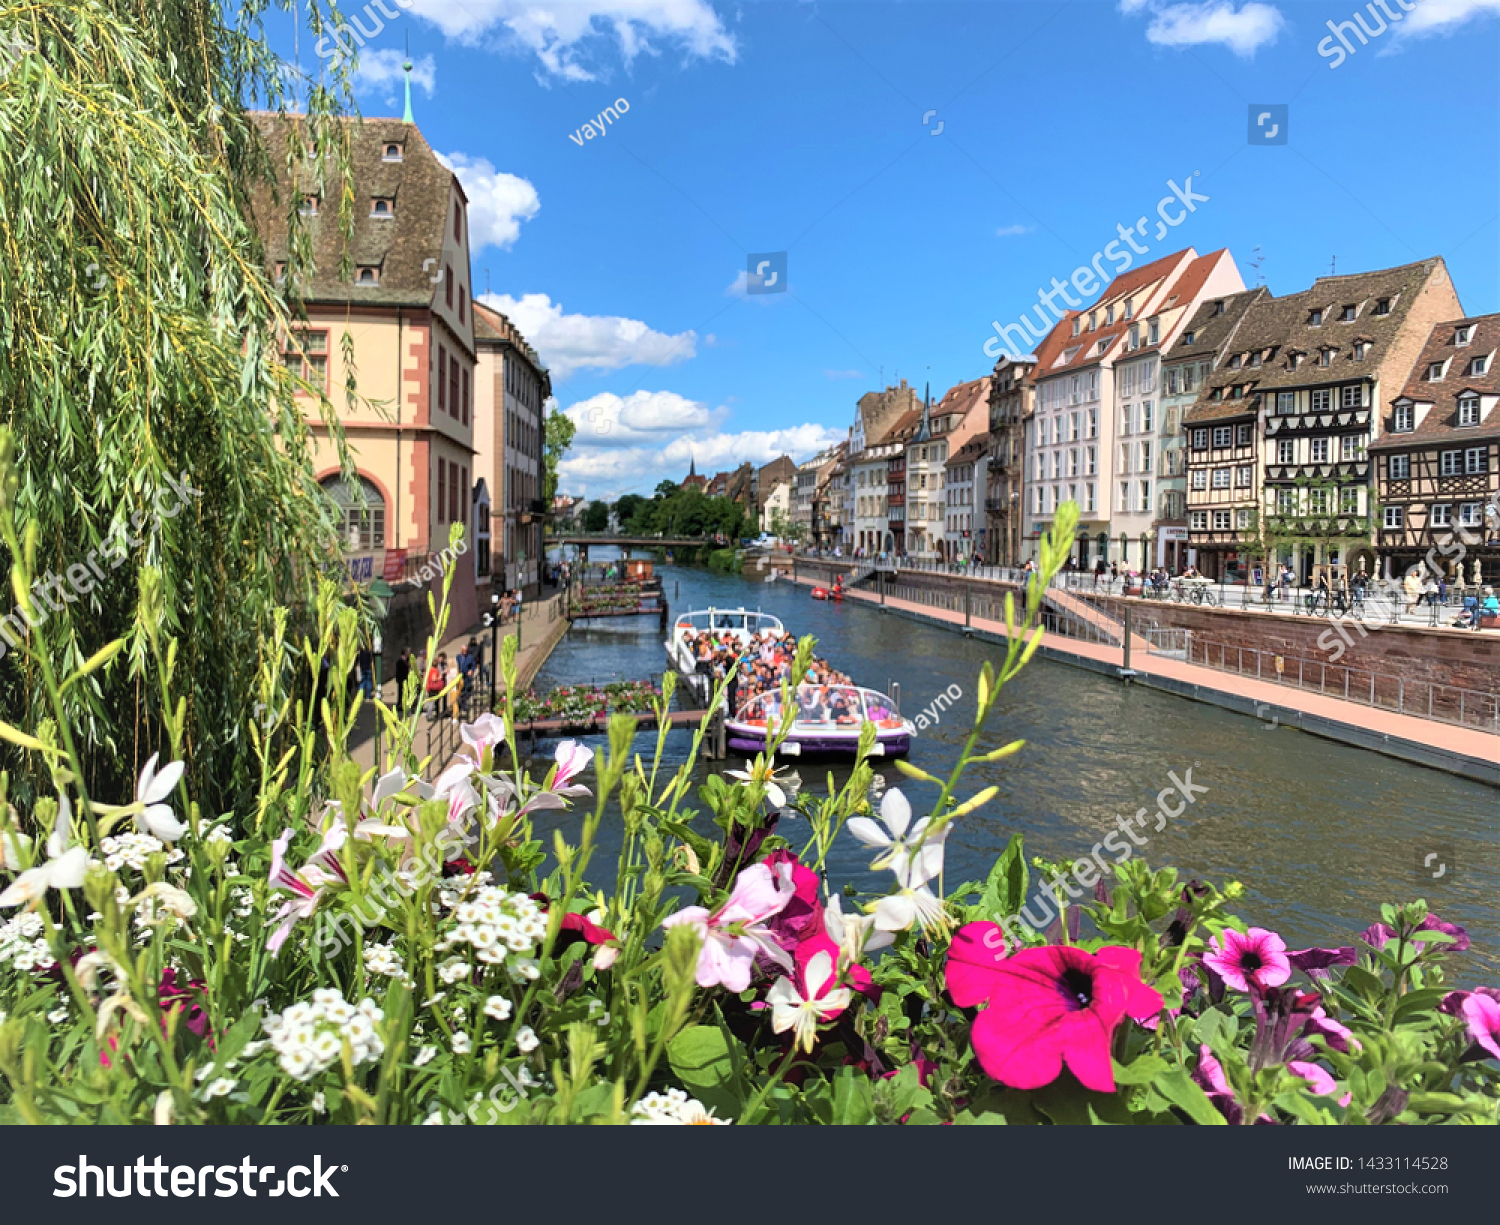 A view from Strasbourg in Alsace region of France